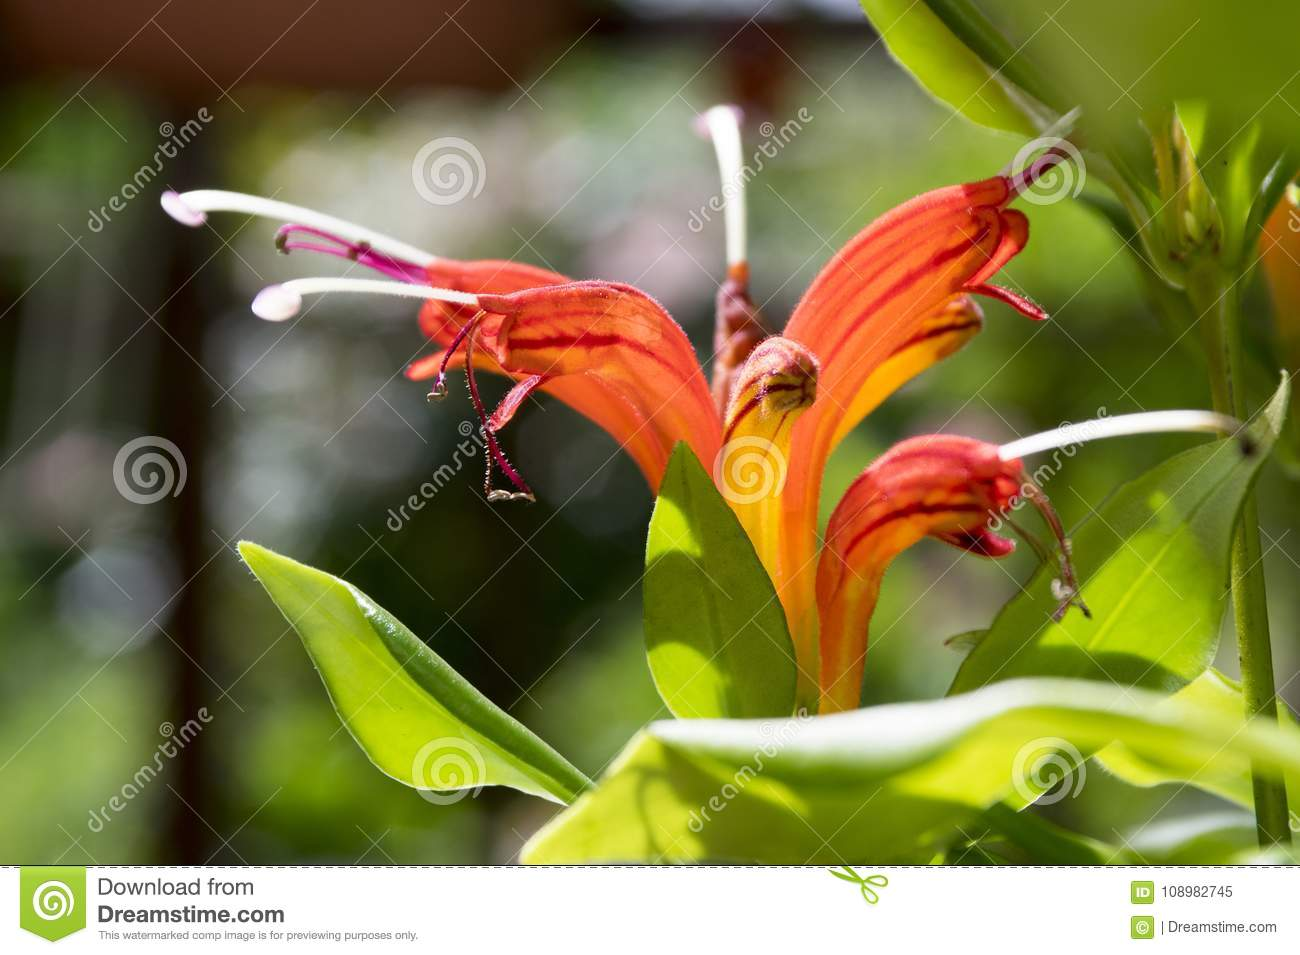 Aeschynanthus Speciosus In Bloom Pretty Orange Red Flowers